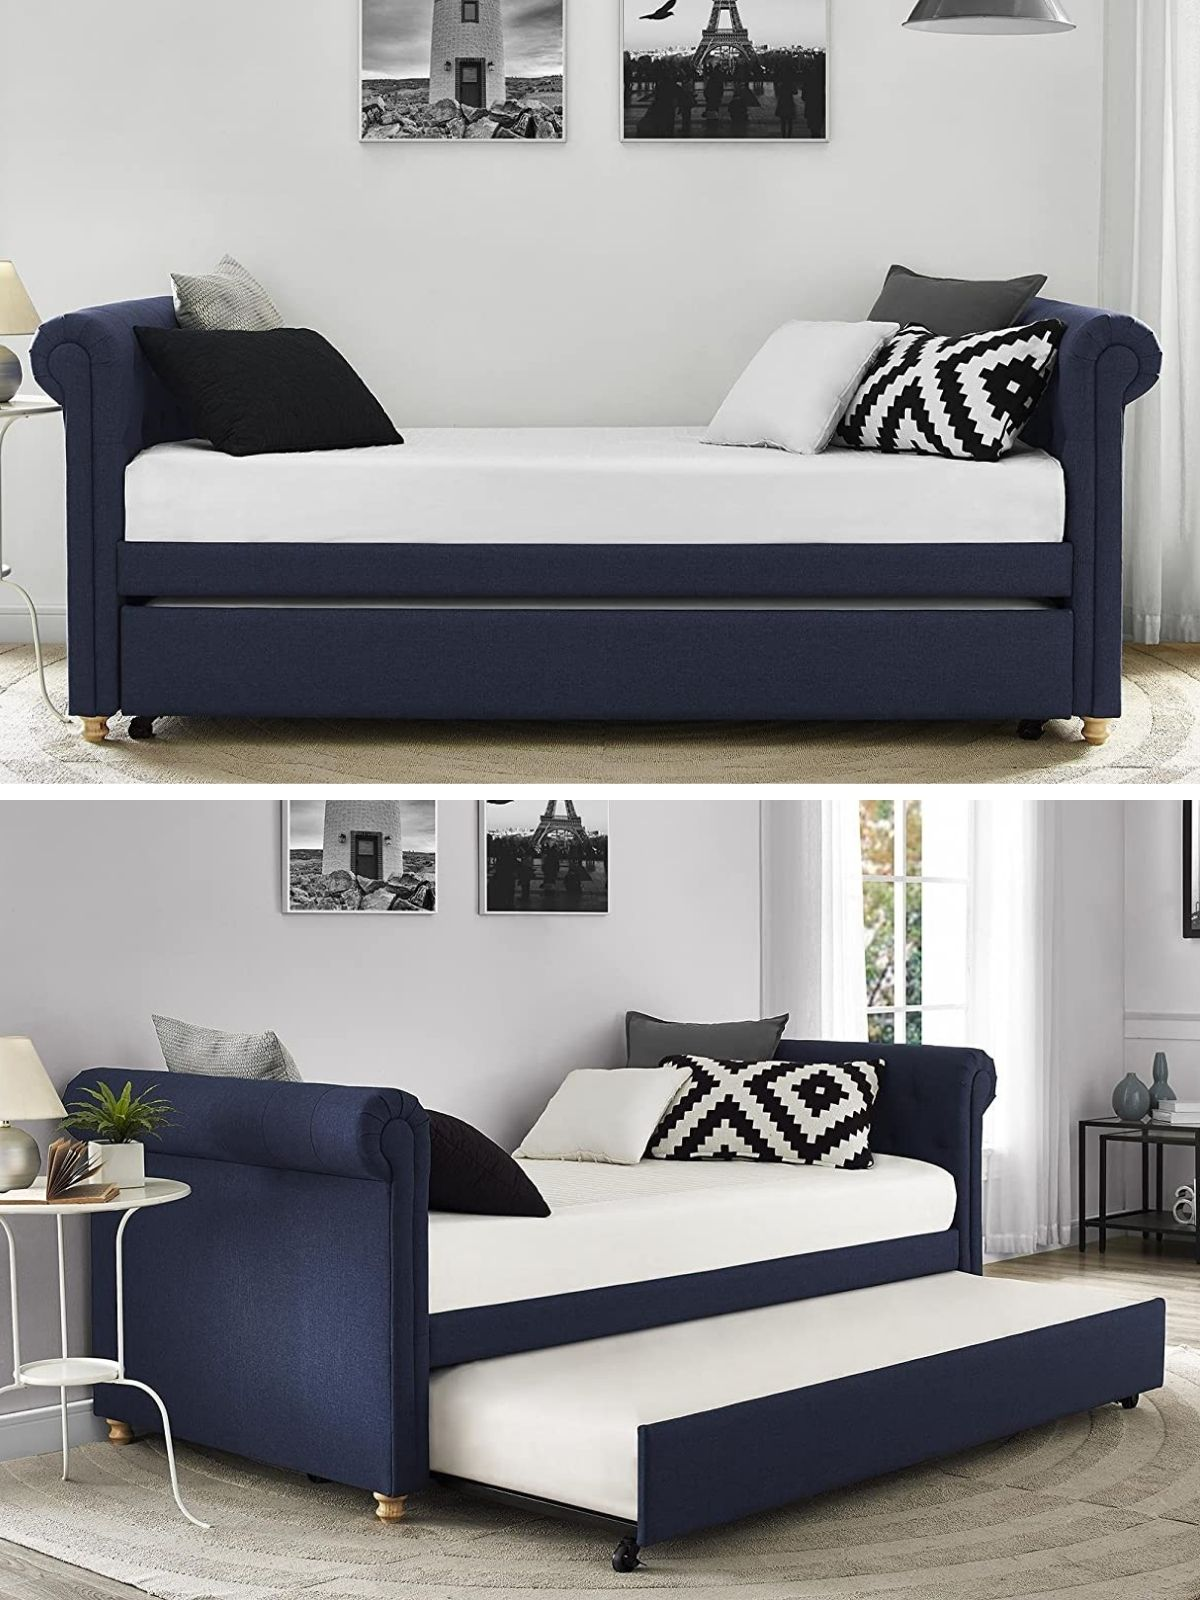 daybed navy - 20 delightful daybeds that easily convert into comfortable beds